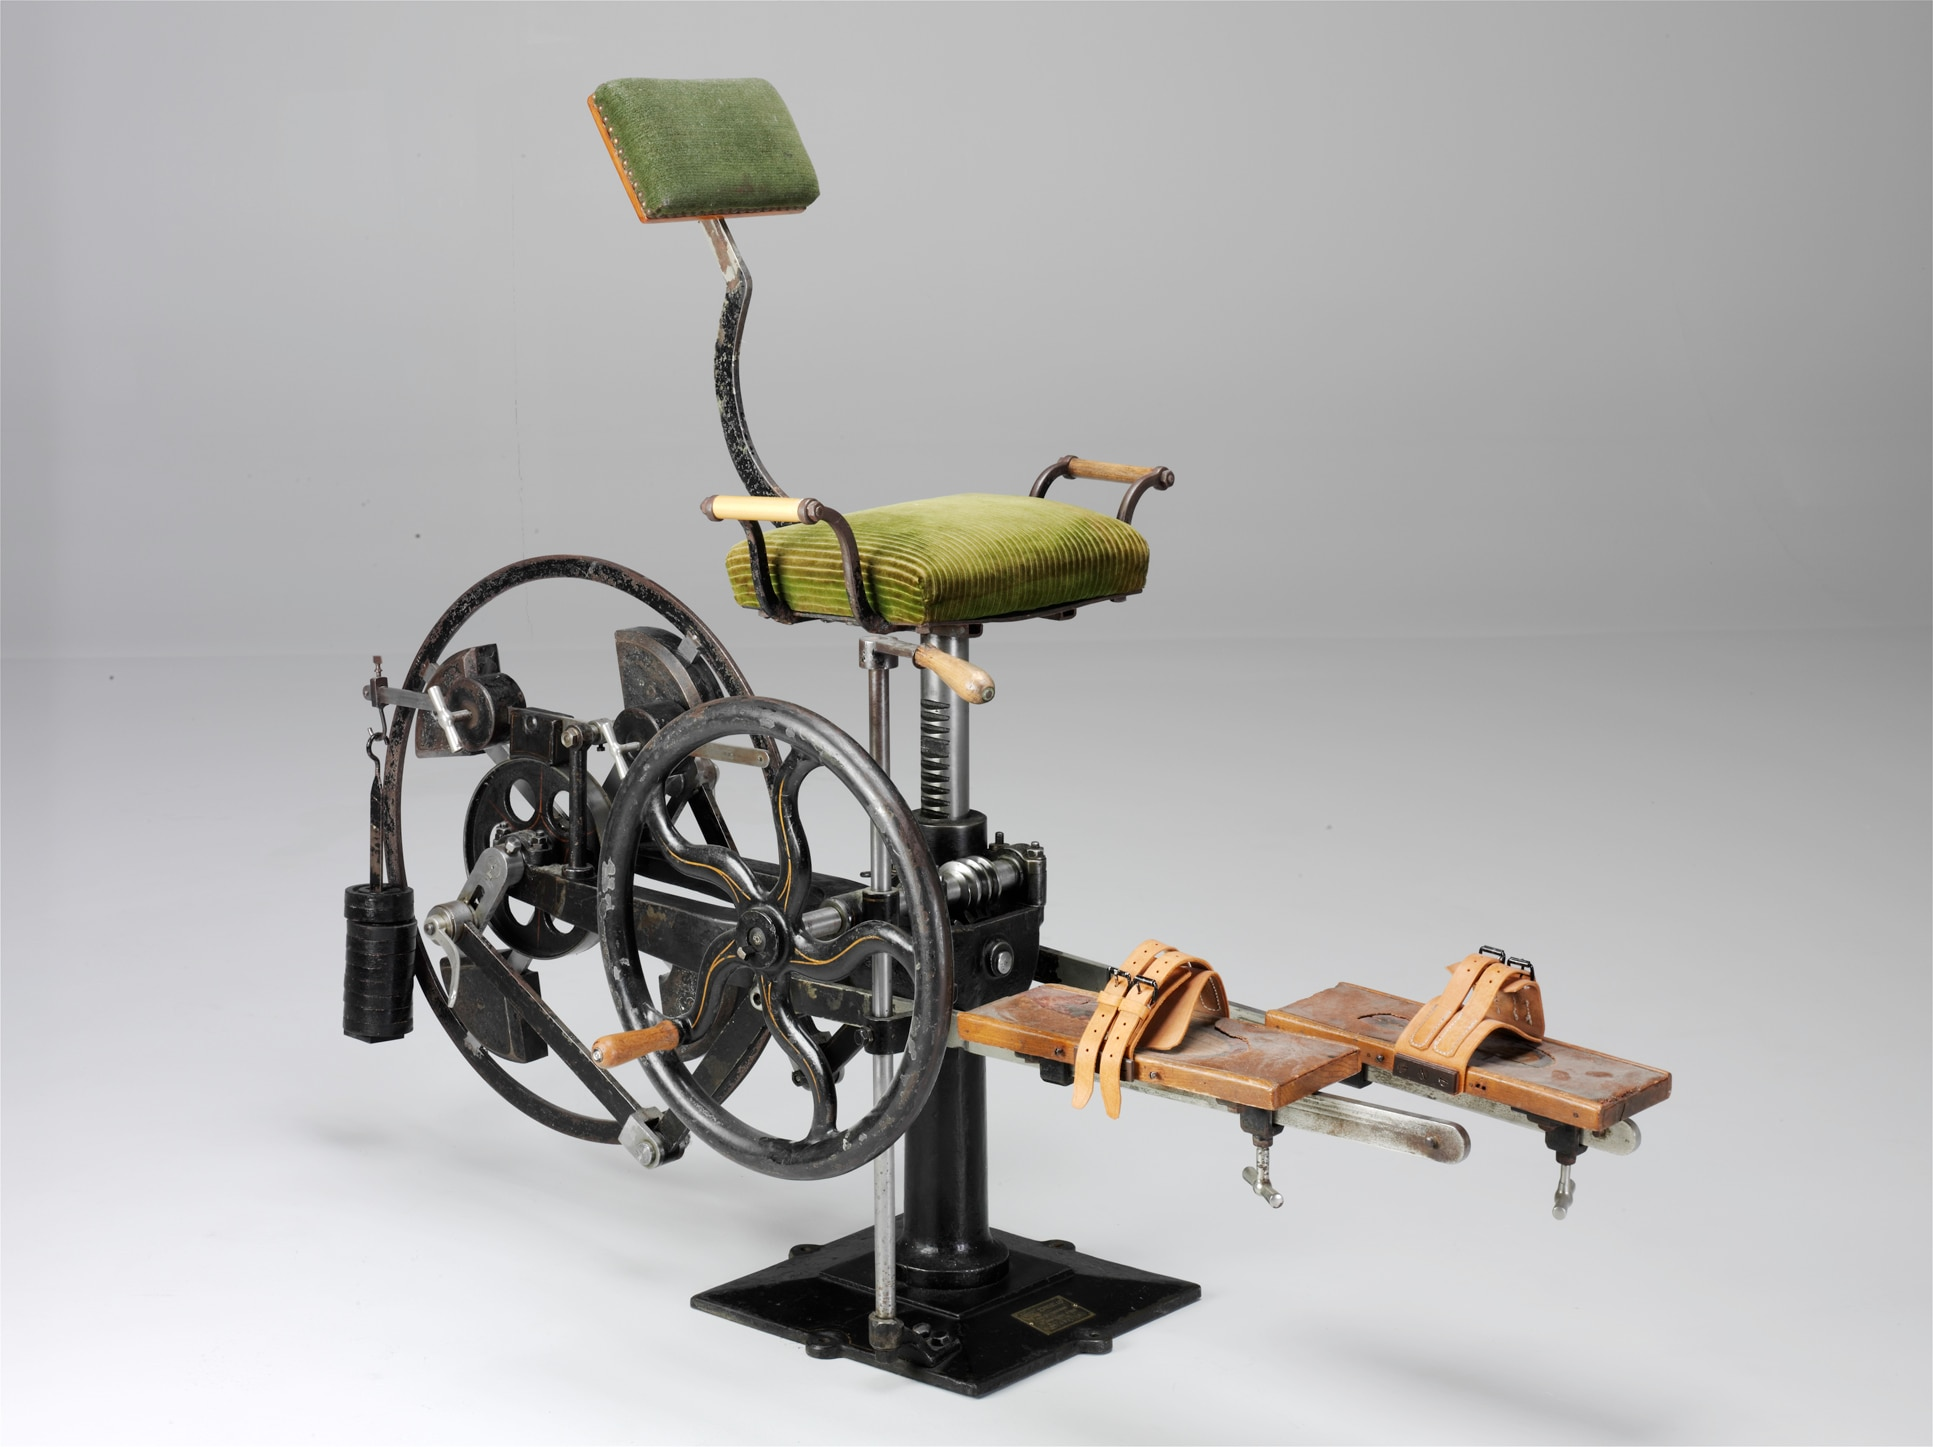 Medico-mechanical apparatus for velocipede pedalling. Wiesbaden: Rossel, Schwarz & Co., around 1925. (Zurich University Museum of the History of Medicine/Donat Stuppan, Swiss National Museum)